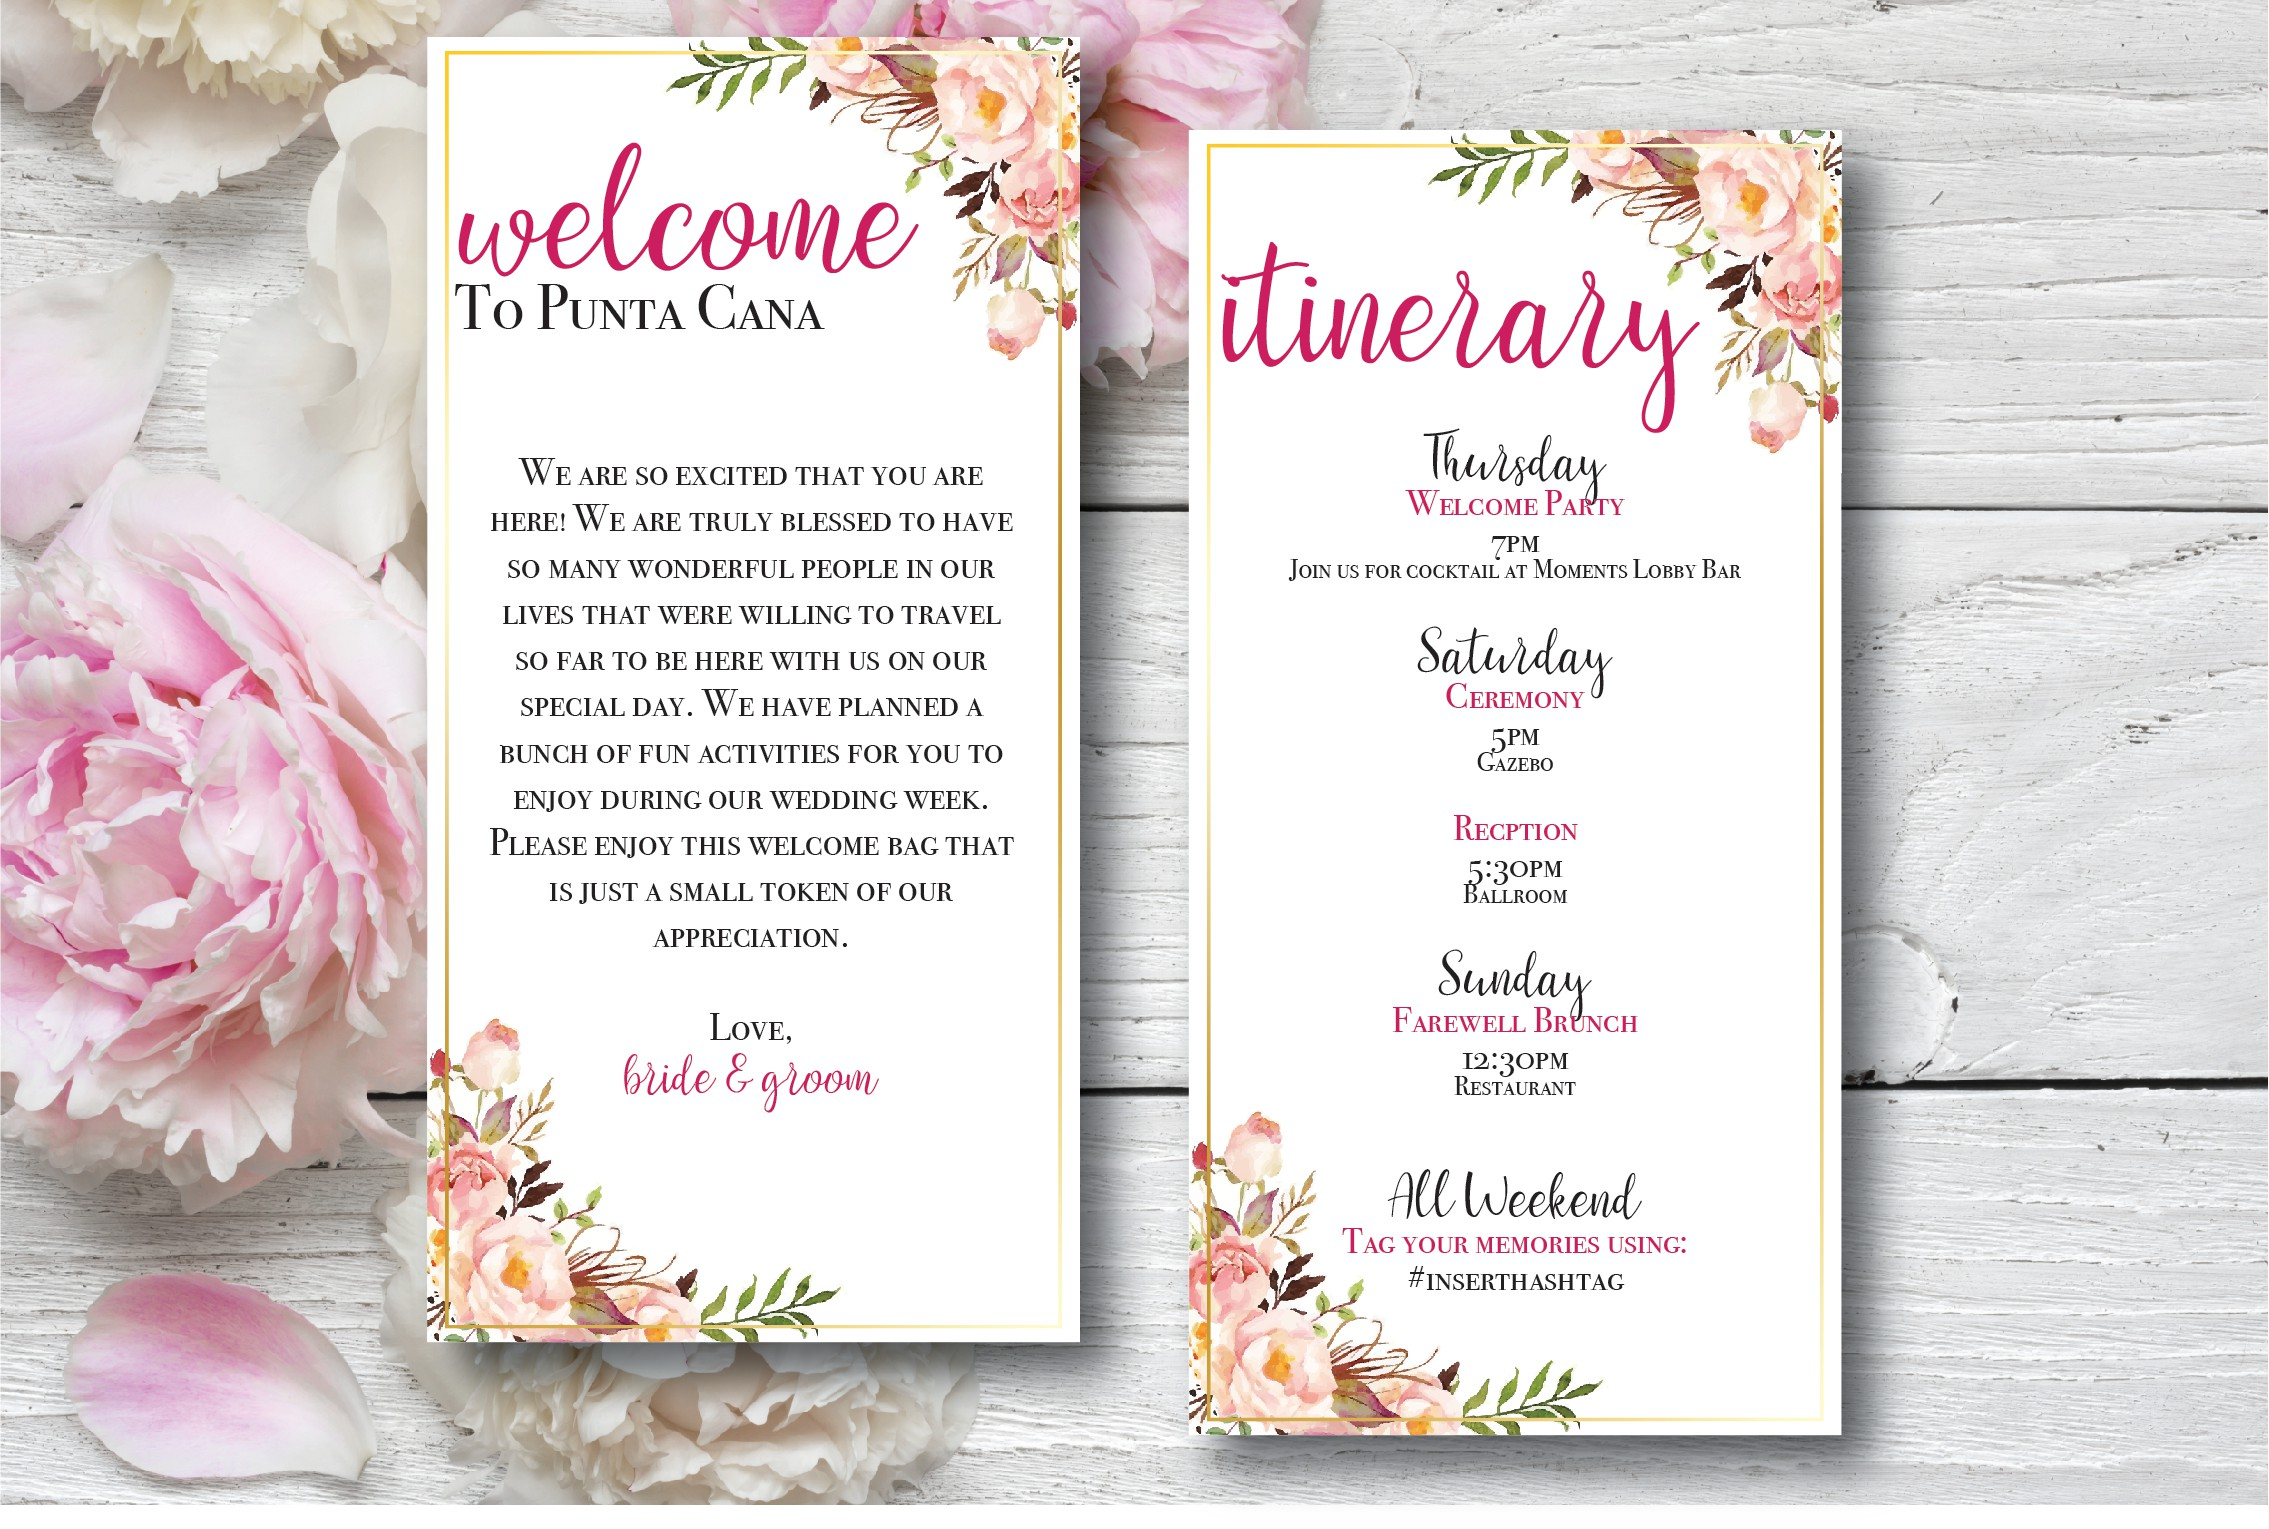 Creative Destination Wedding Ideas  Destination Wedding Details